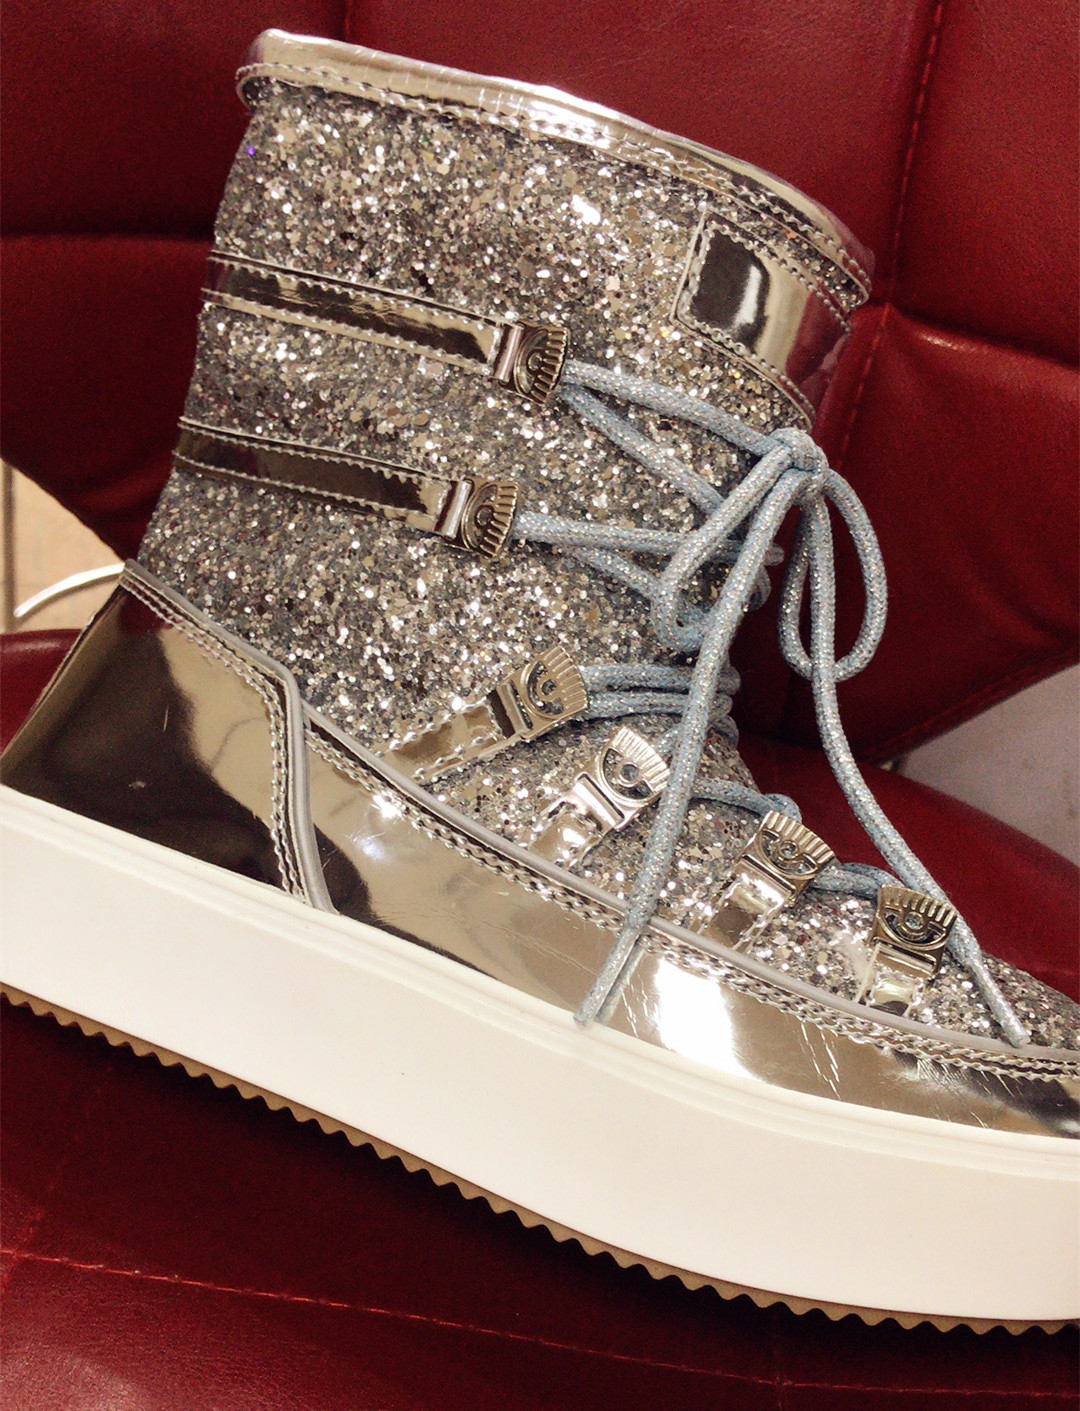 Chaud Pain Paillettes as Picture Plate Femme Strass Dentelle Picture Hiver Wedge forme Courtes Bottes Neige Mode Femmes Chaussures Fourrure Up As 0ZYxqf